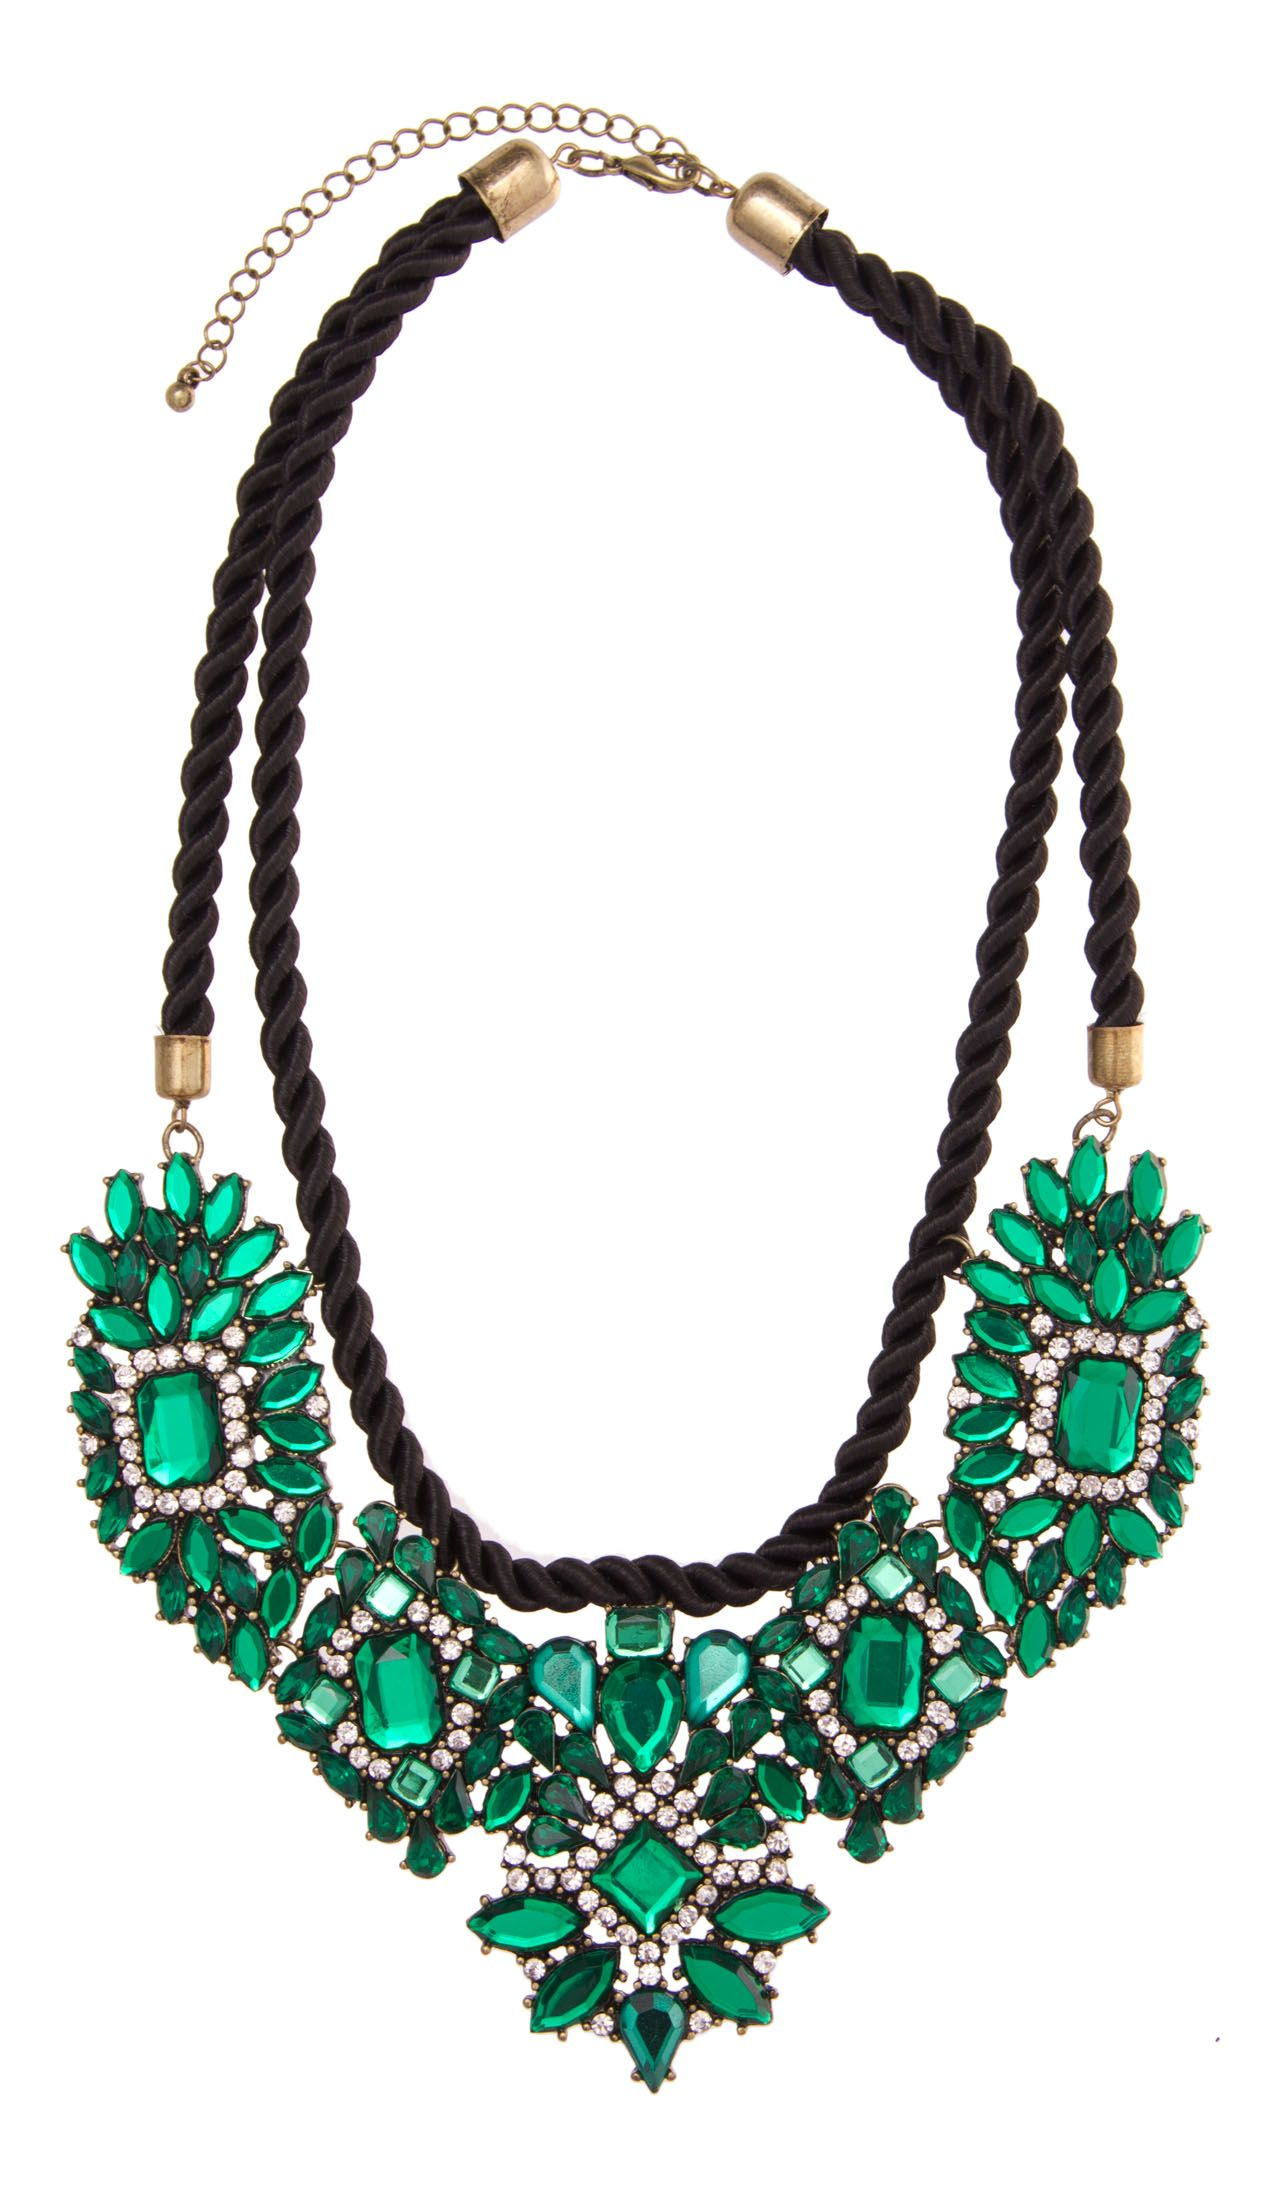 2f1fb06437 Colette by Colette Hayman - Stunning Necklace (Emerald)  24.95 ...